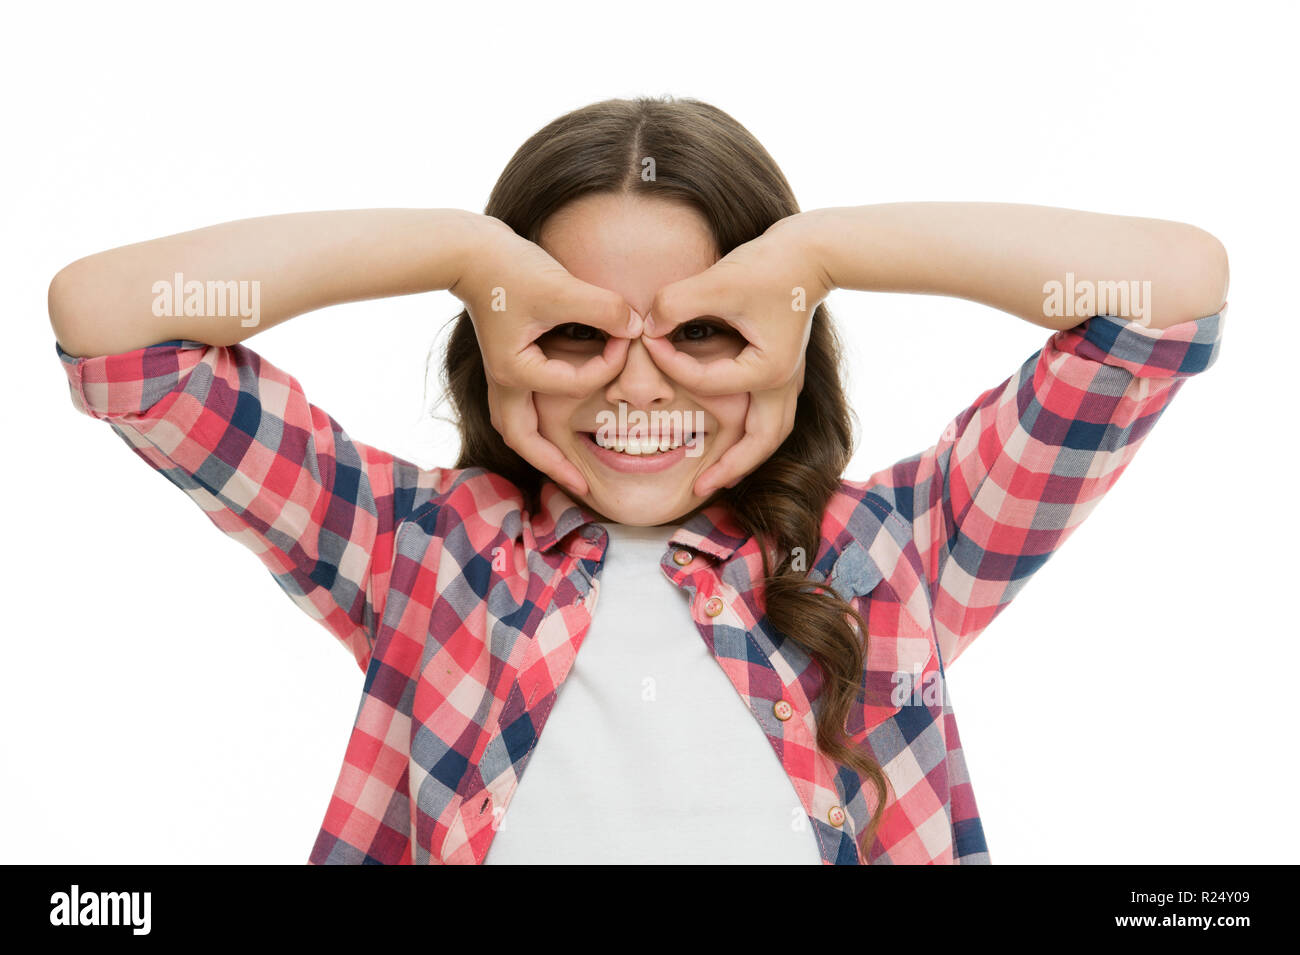 Girl holding fingers near eyes like glasses mask superhero or owl. Play game with mask superhero. Child cheerful mood happy grimace with mask. Pretend be fantastic hero. Kid hide face finger mask. - Stock Image